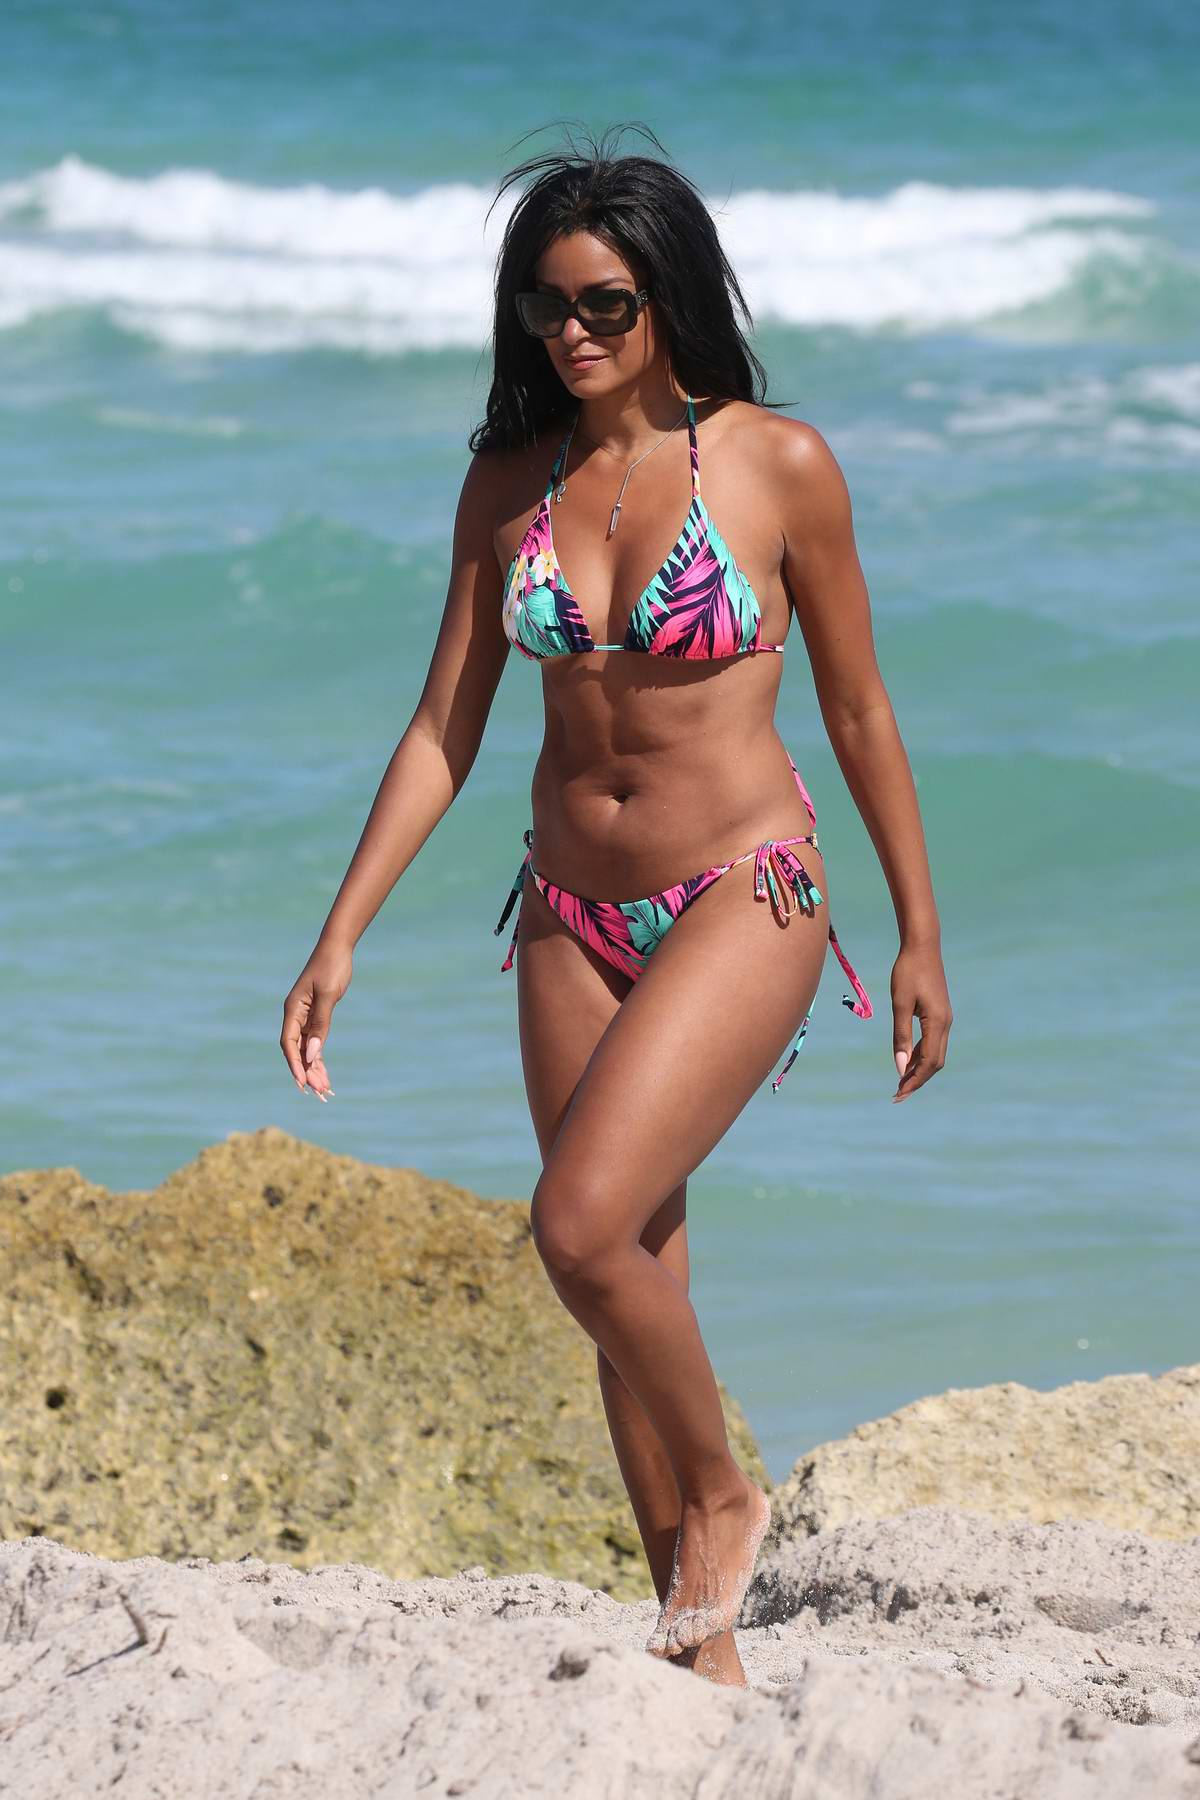 Claudia Jordan spotted in a colorful string bikini on the beach in Miami, Florida